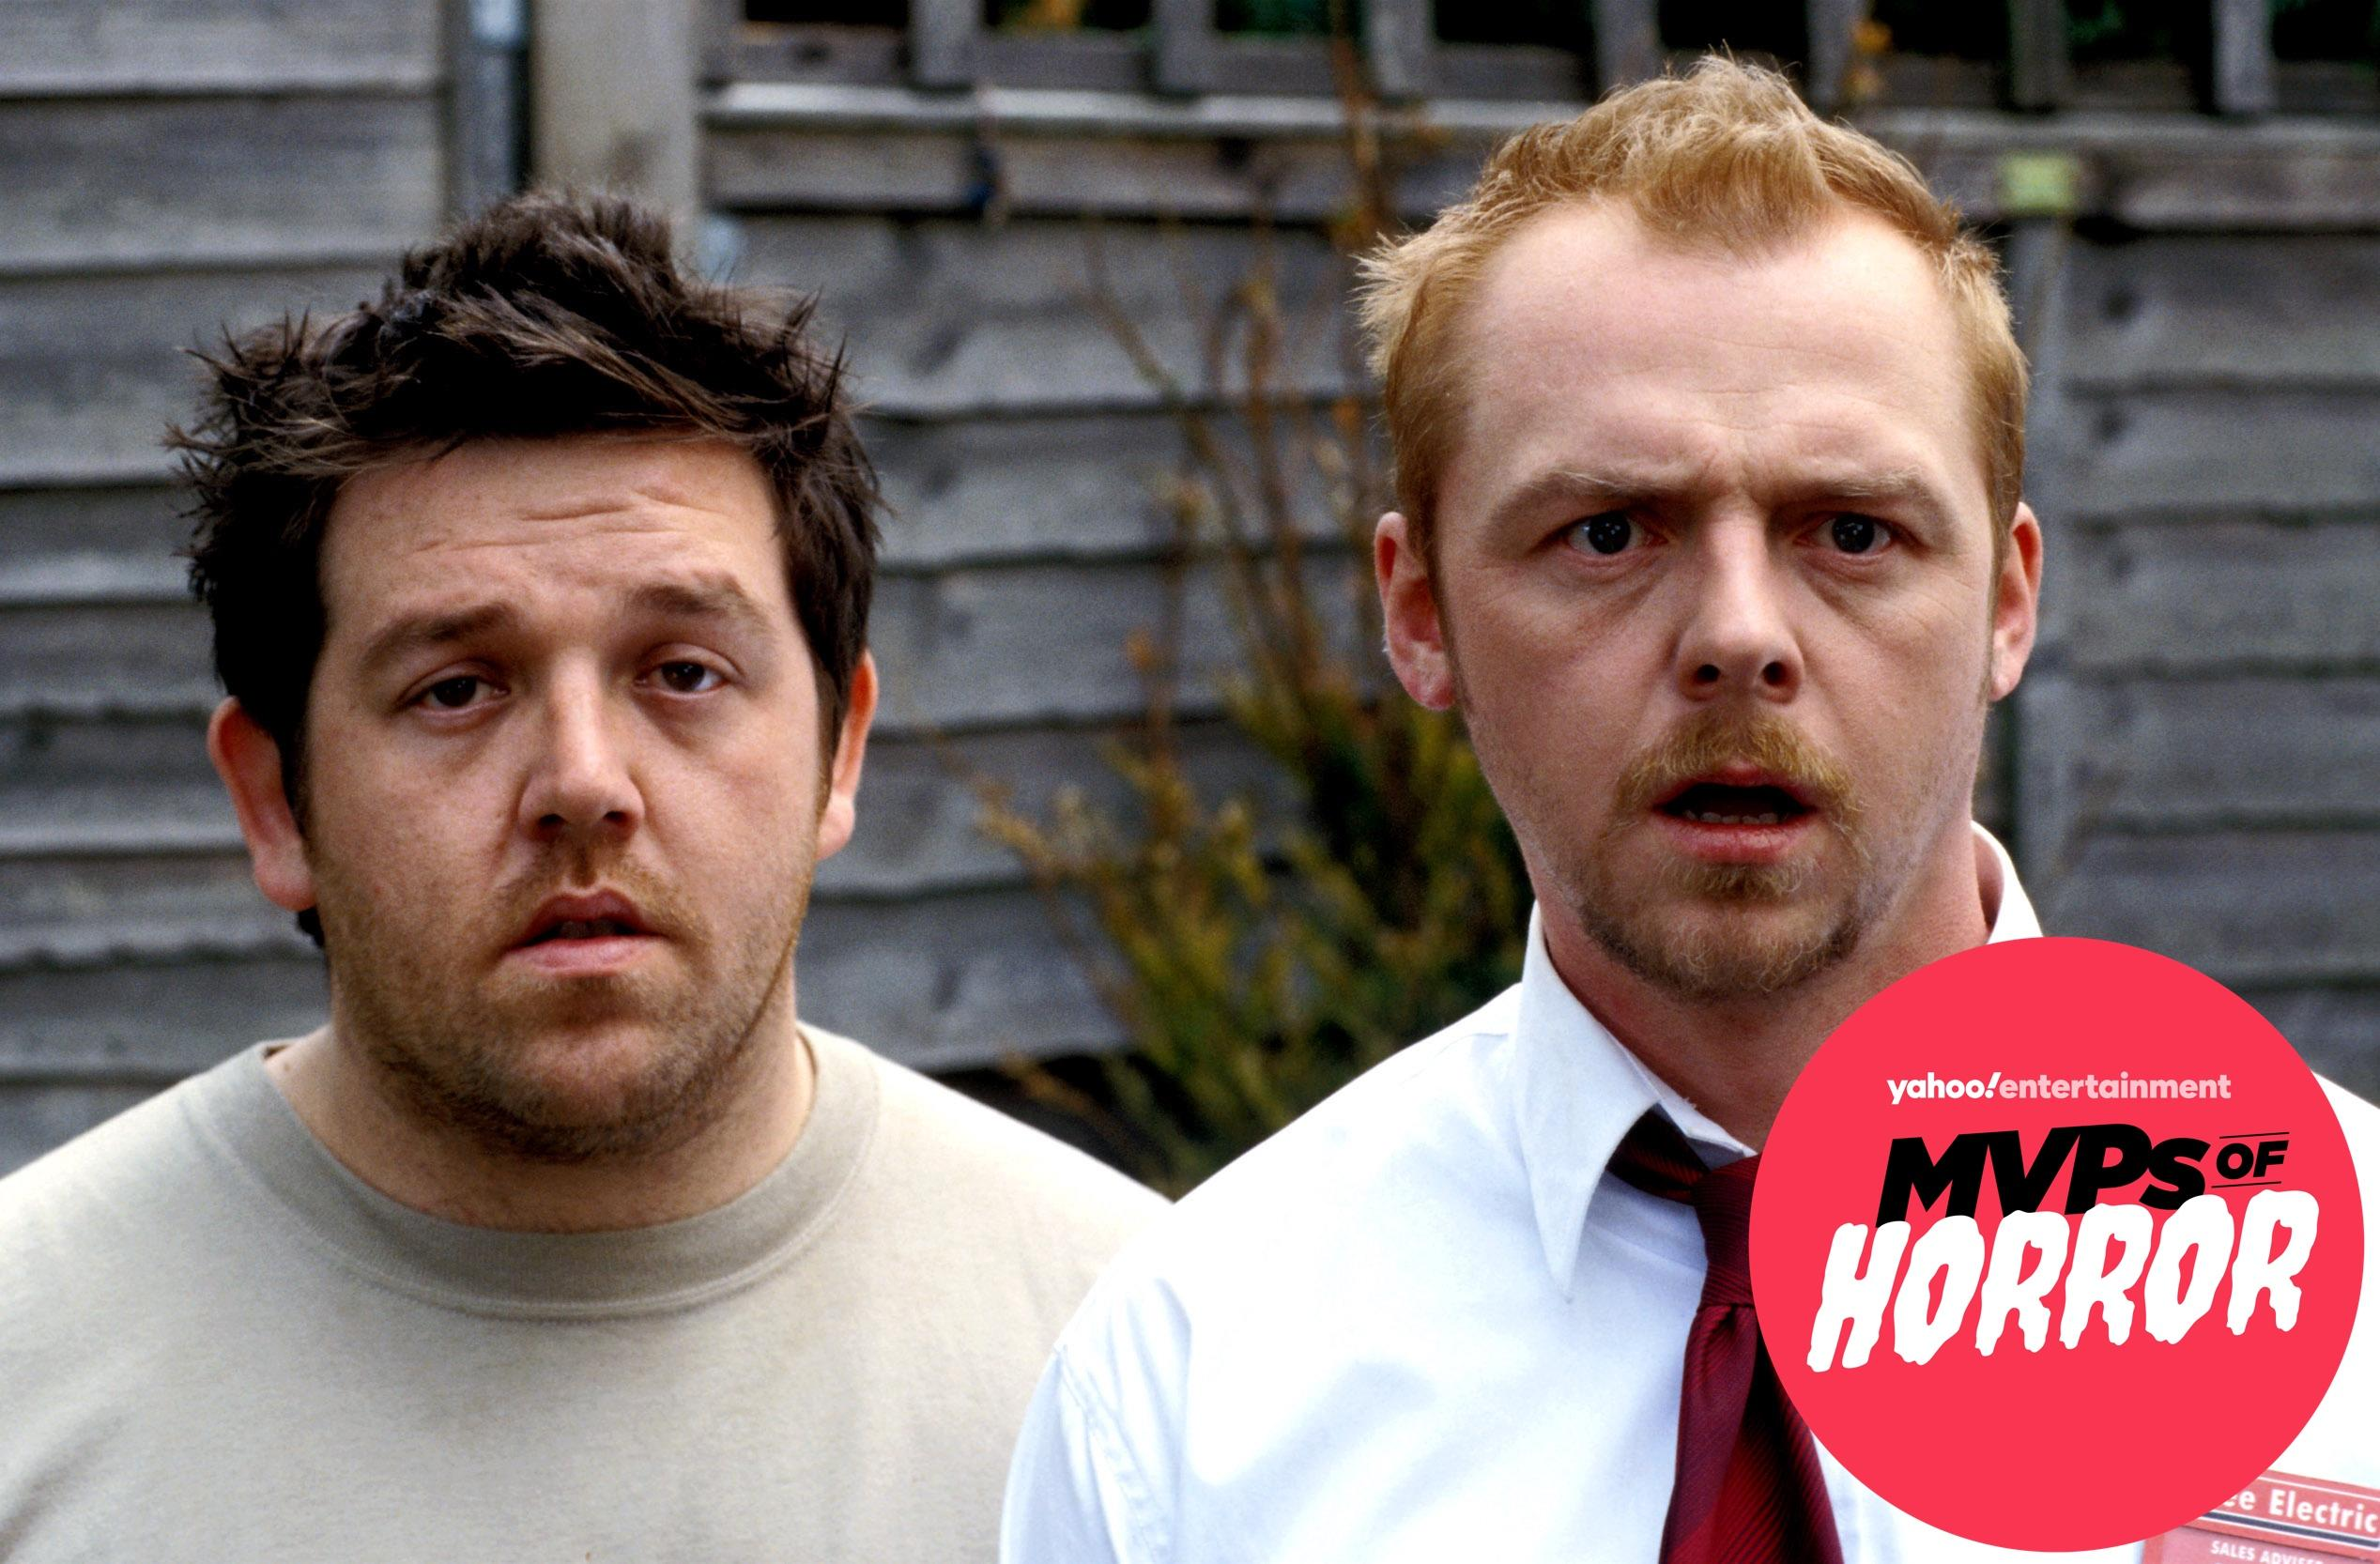 MVPs of Horror: Simon Pegg on the existential terror of zombies and whether Chris Martin really cameos in 'Shaun of the Dead'